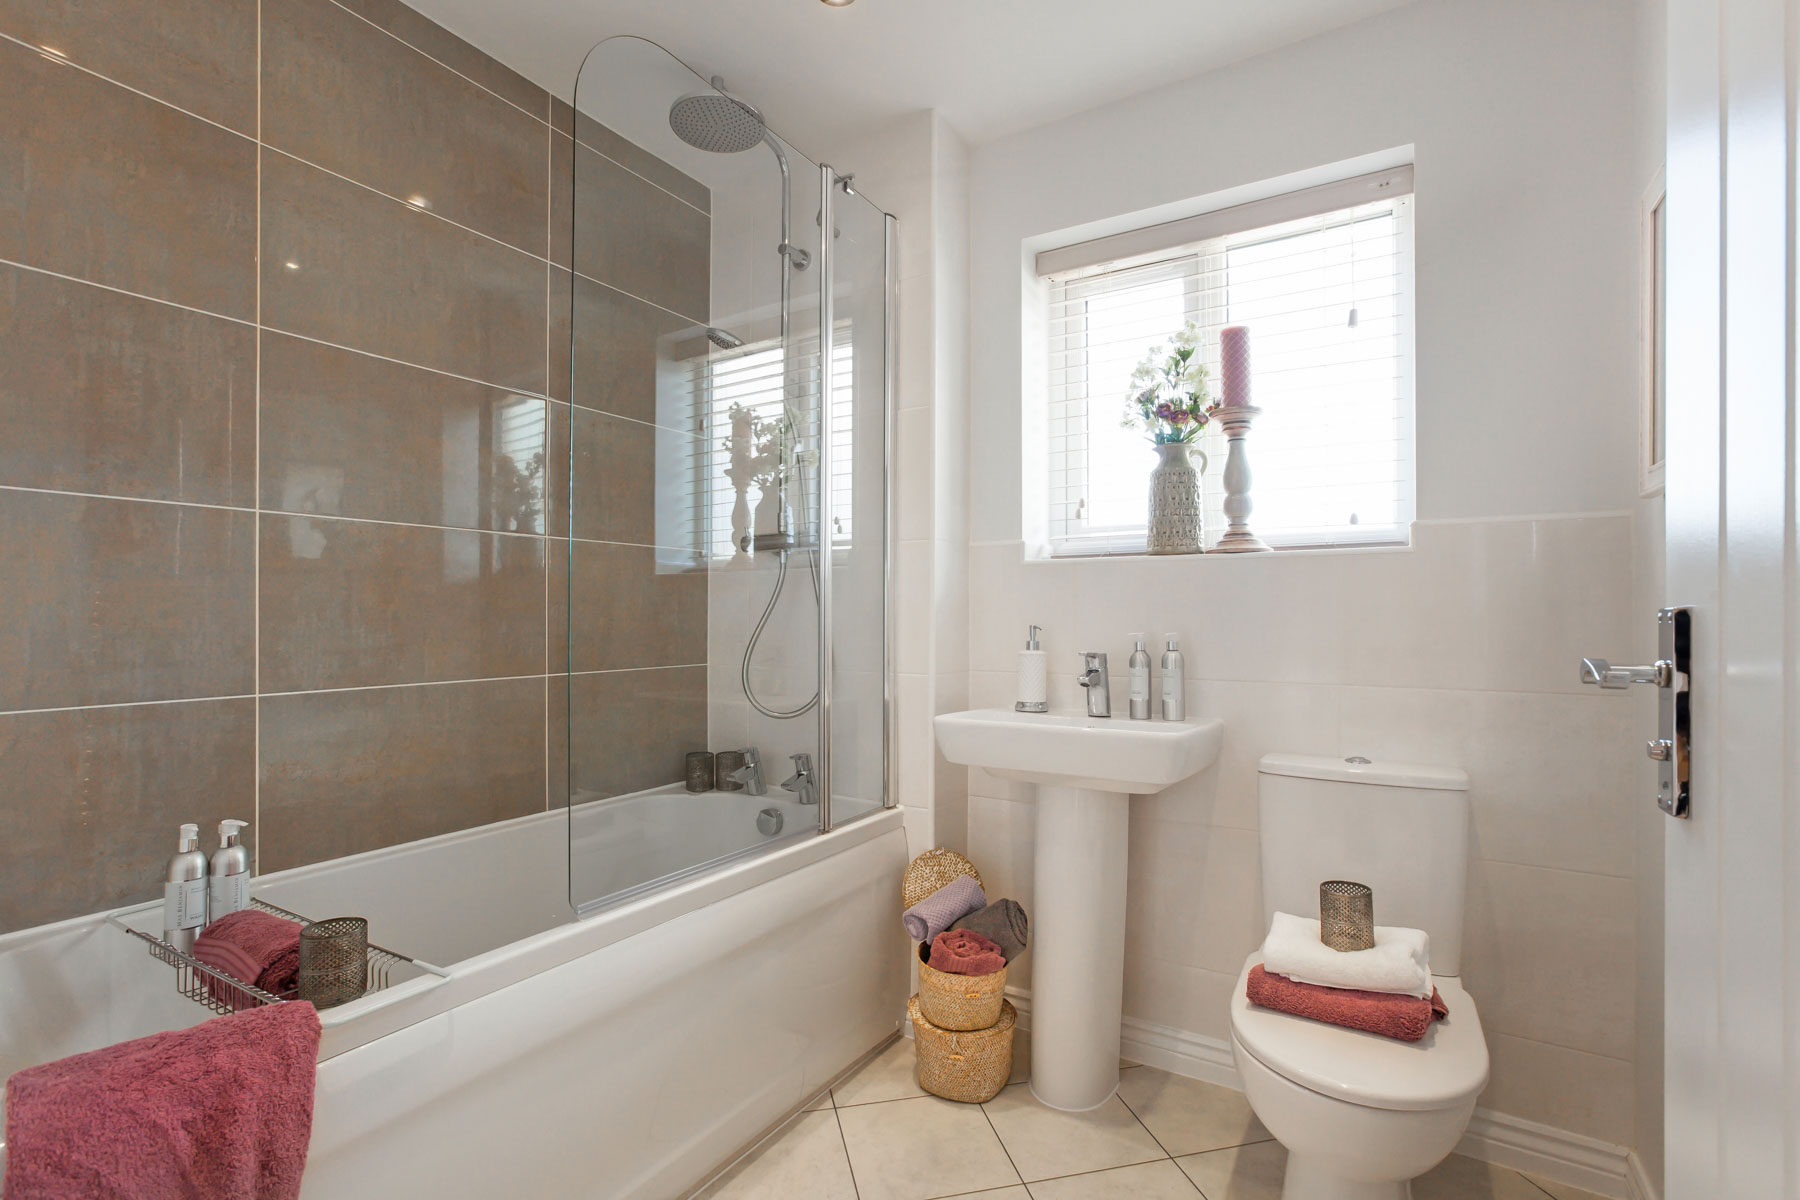 Heydon taylor wimpey for Show home bathrooms